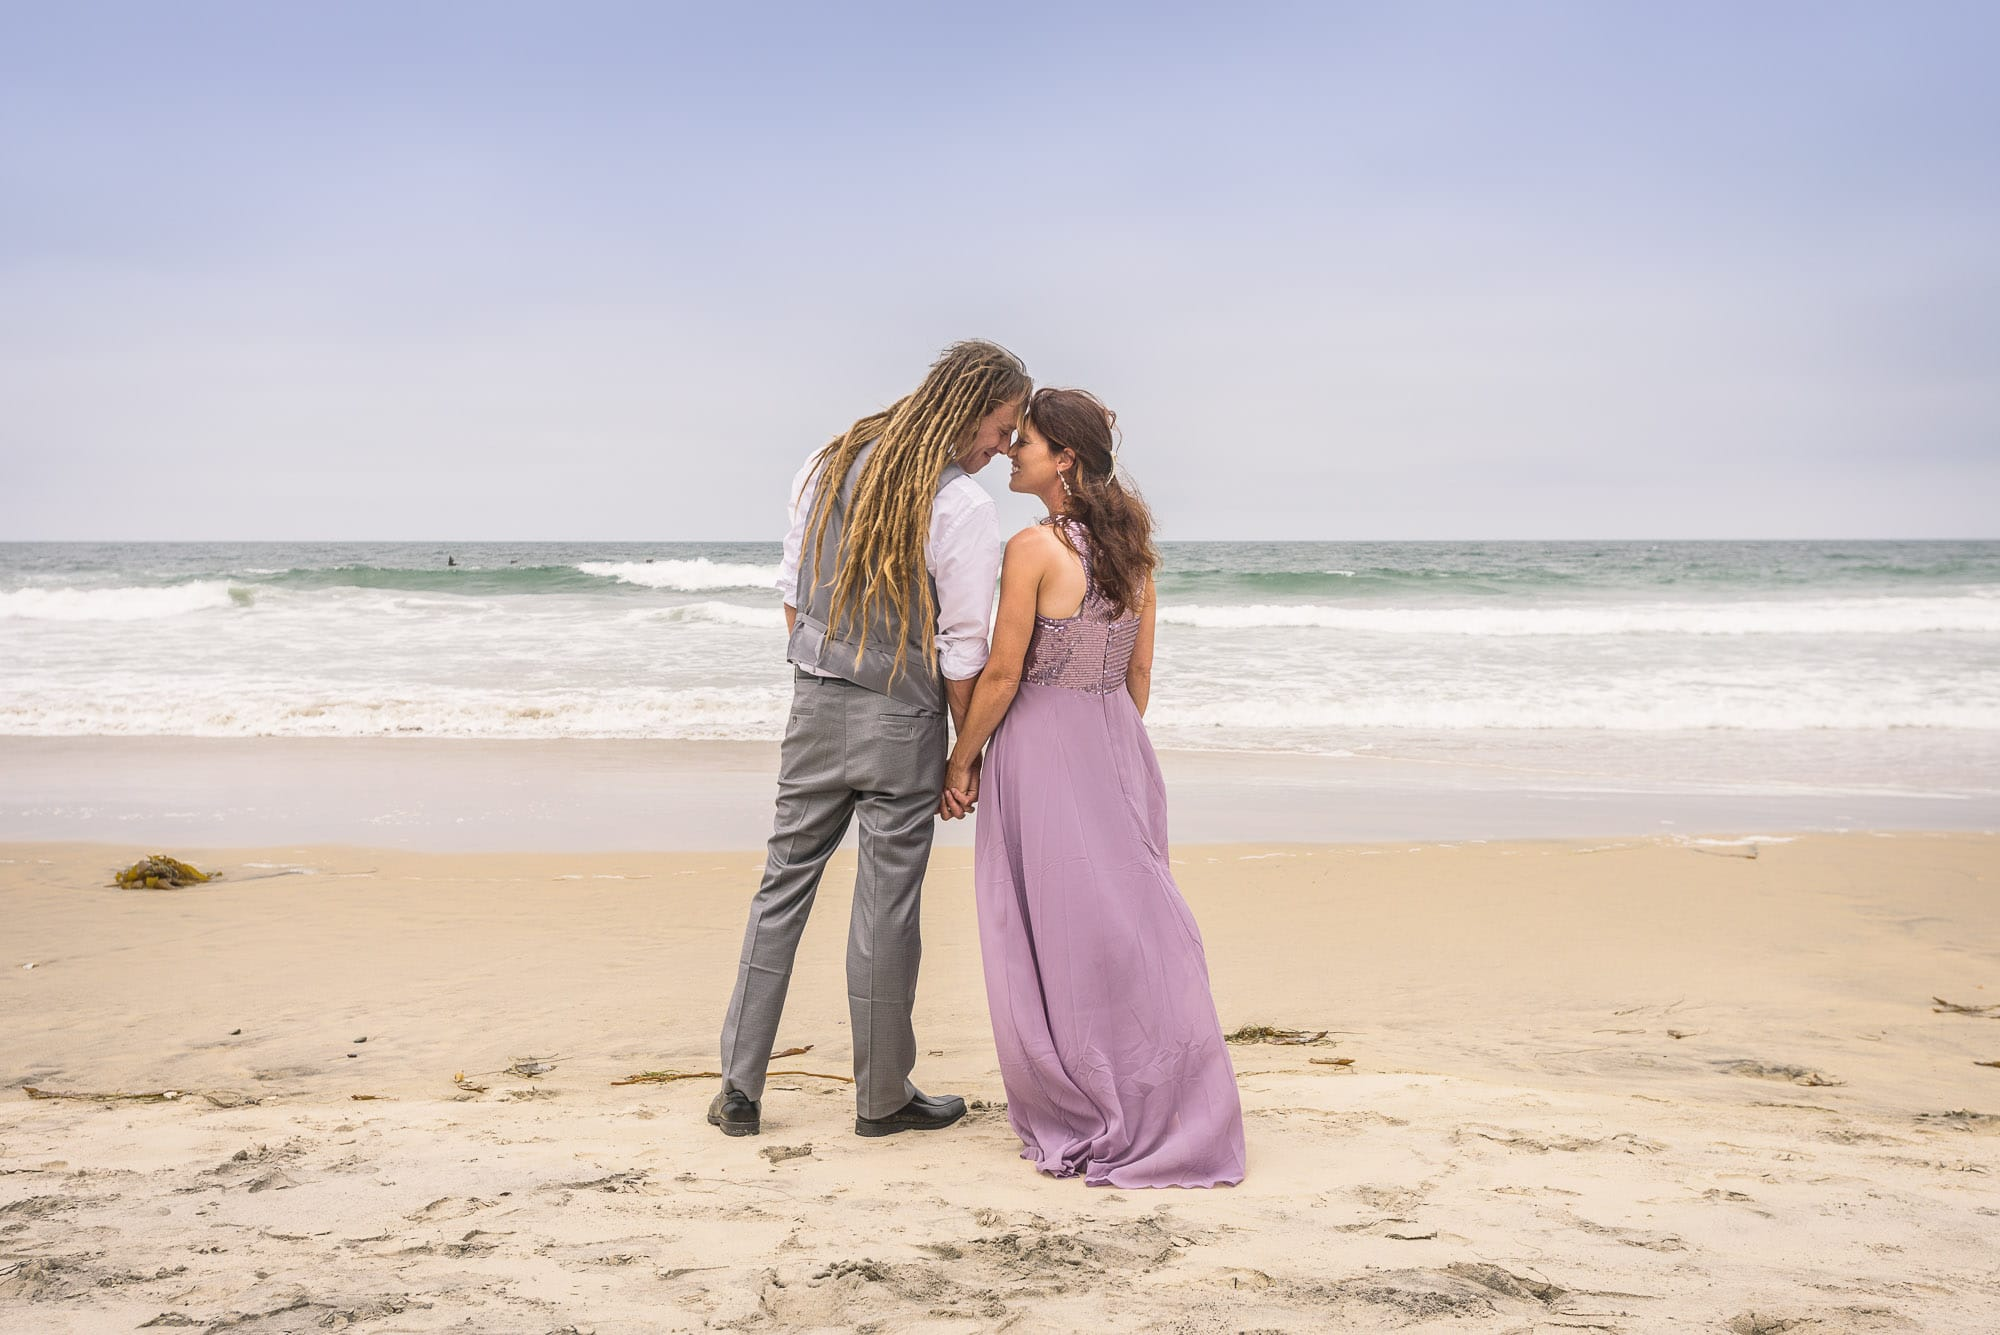 032_Alan_and_Heidi_Brianne_Nathan_San_Diego_Elopement